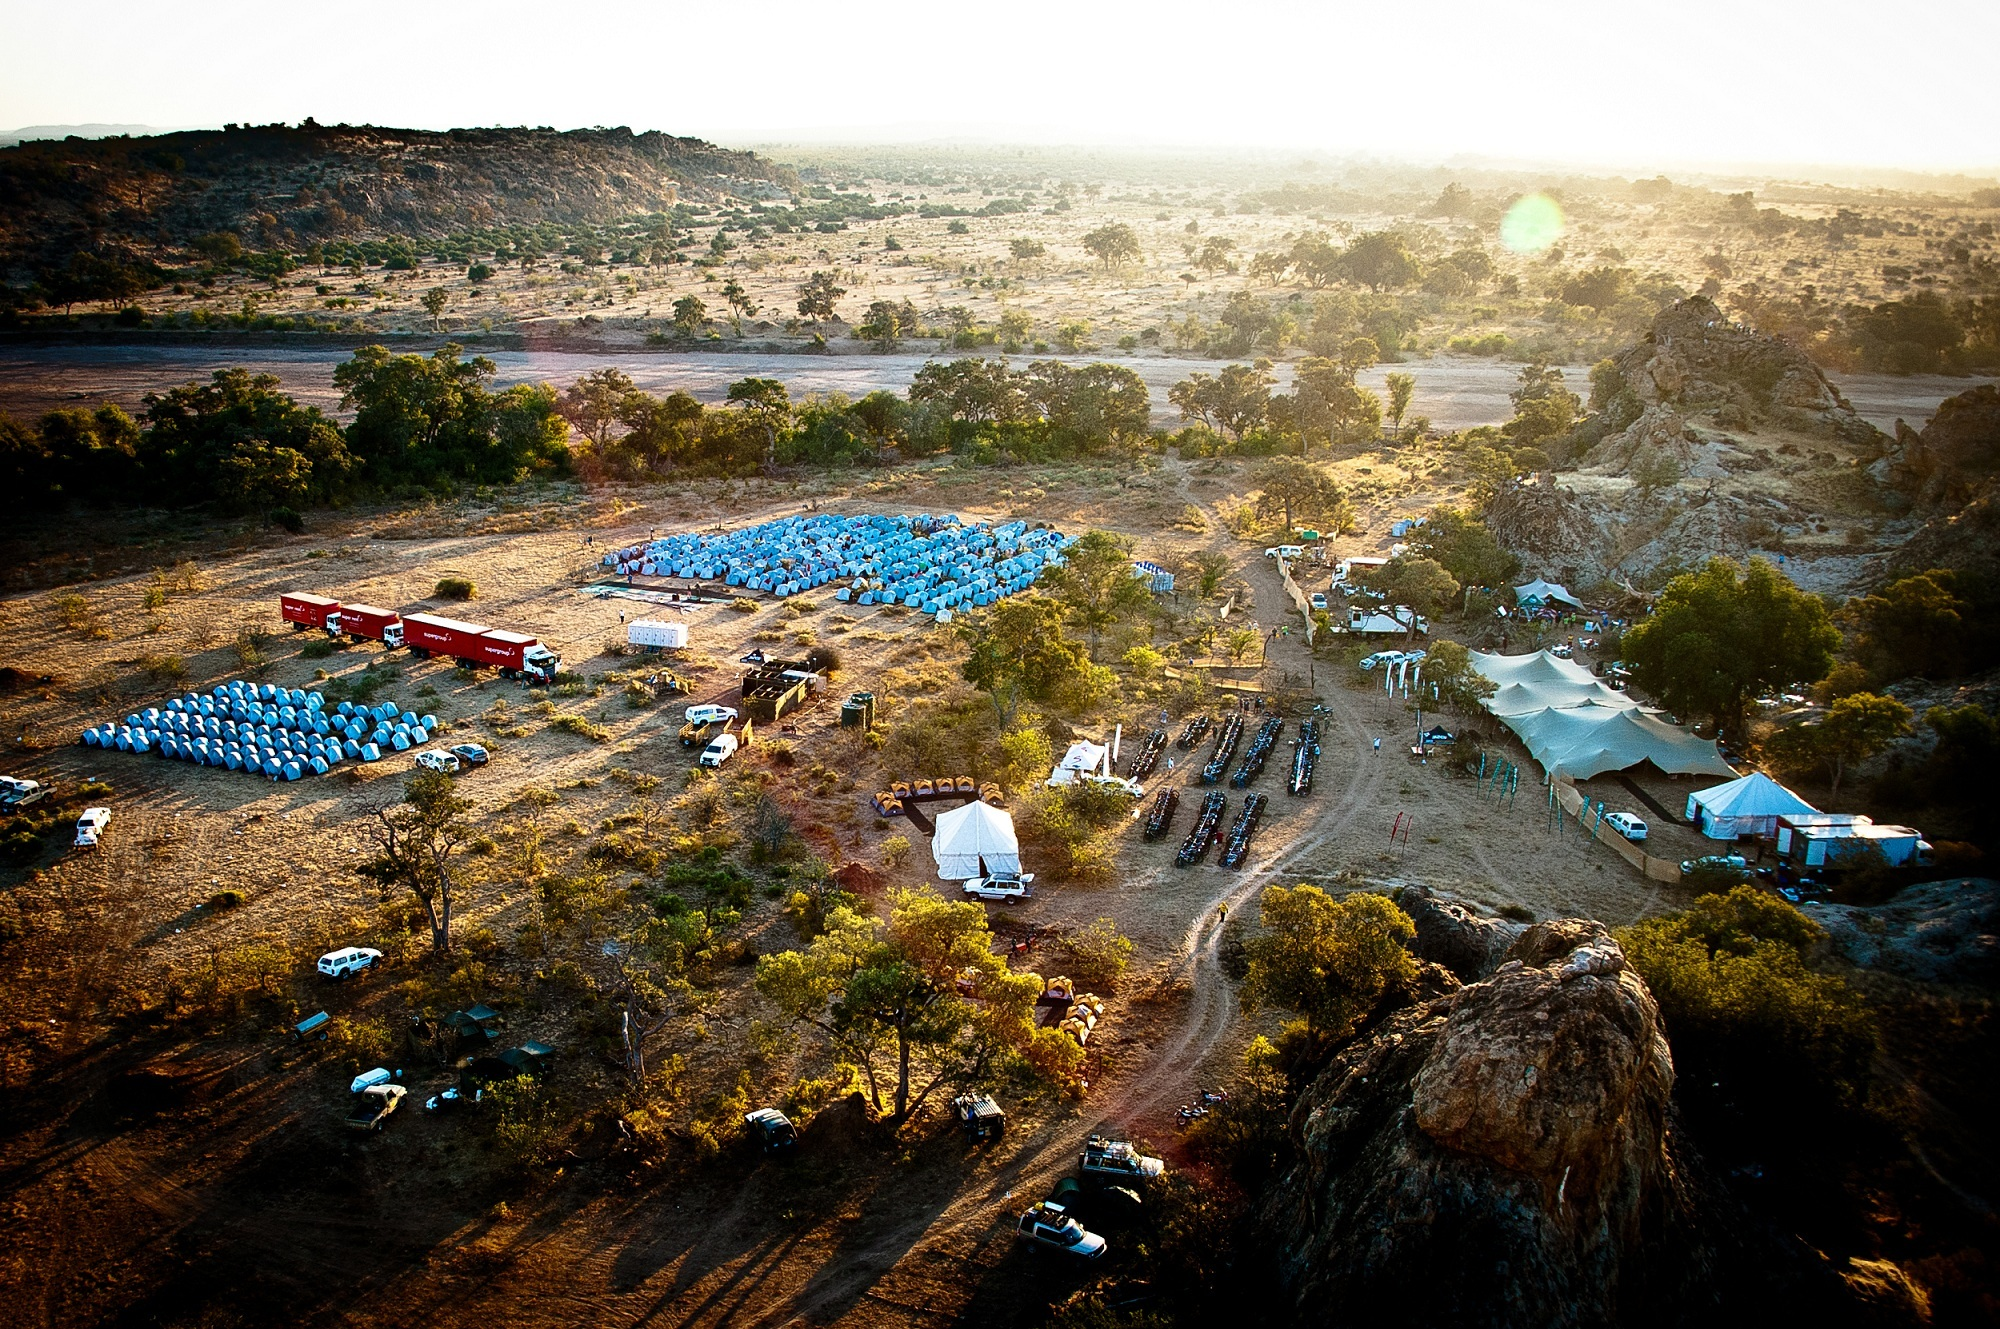 16.Peter Kirk - Amphitheatre Bush Camp.jpg